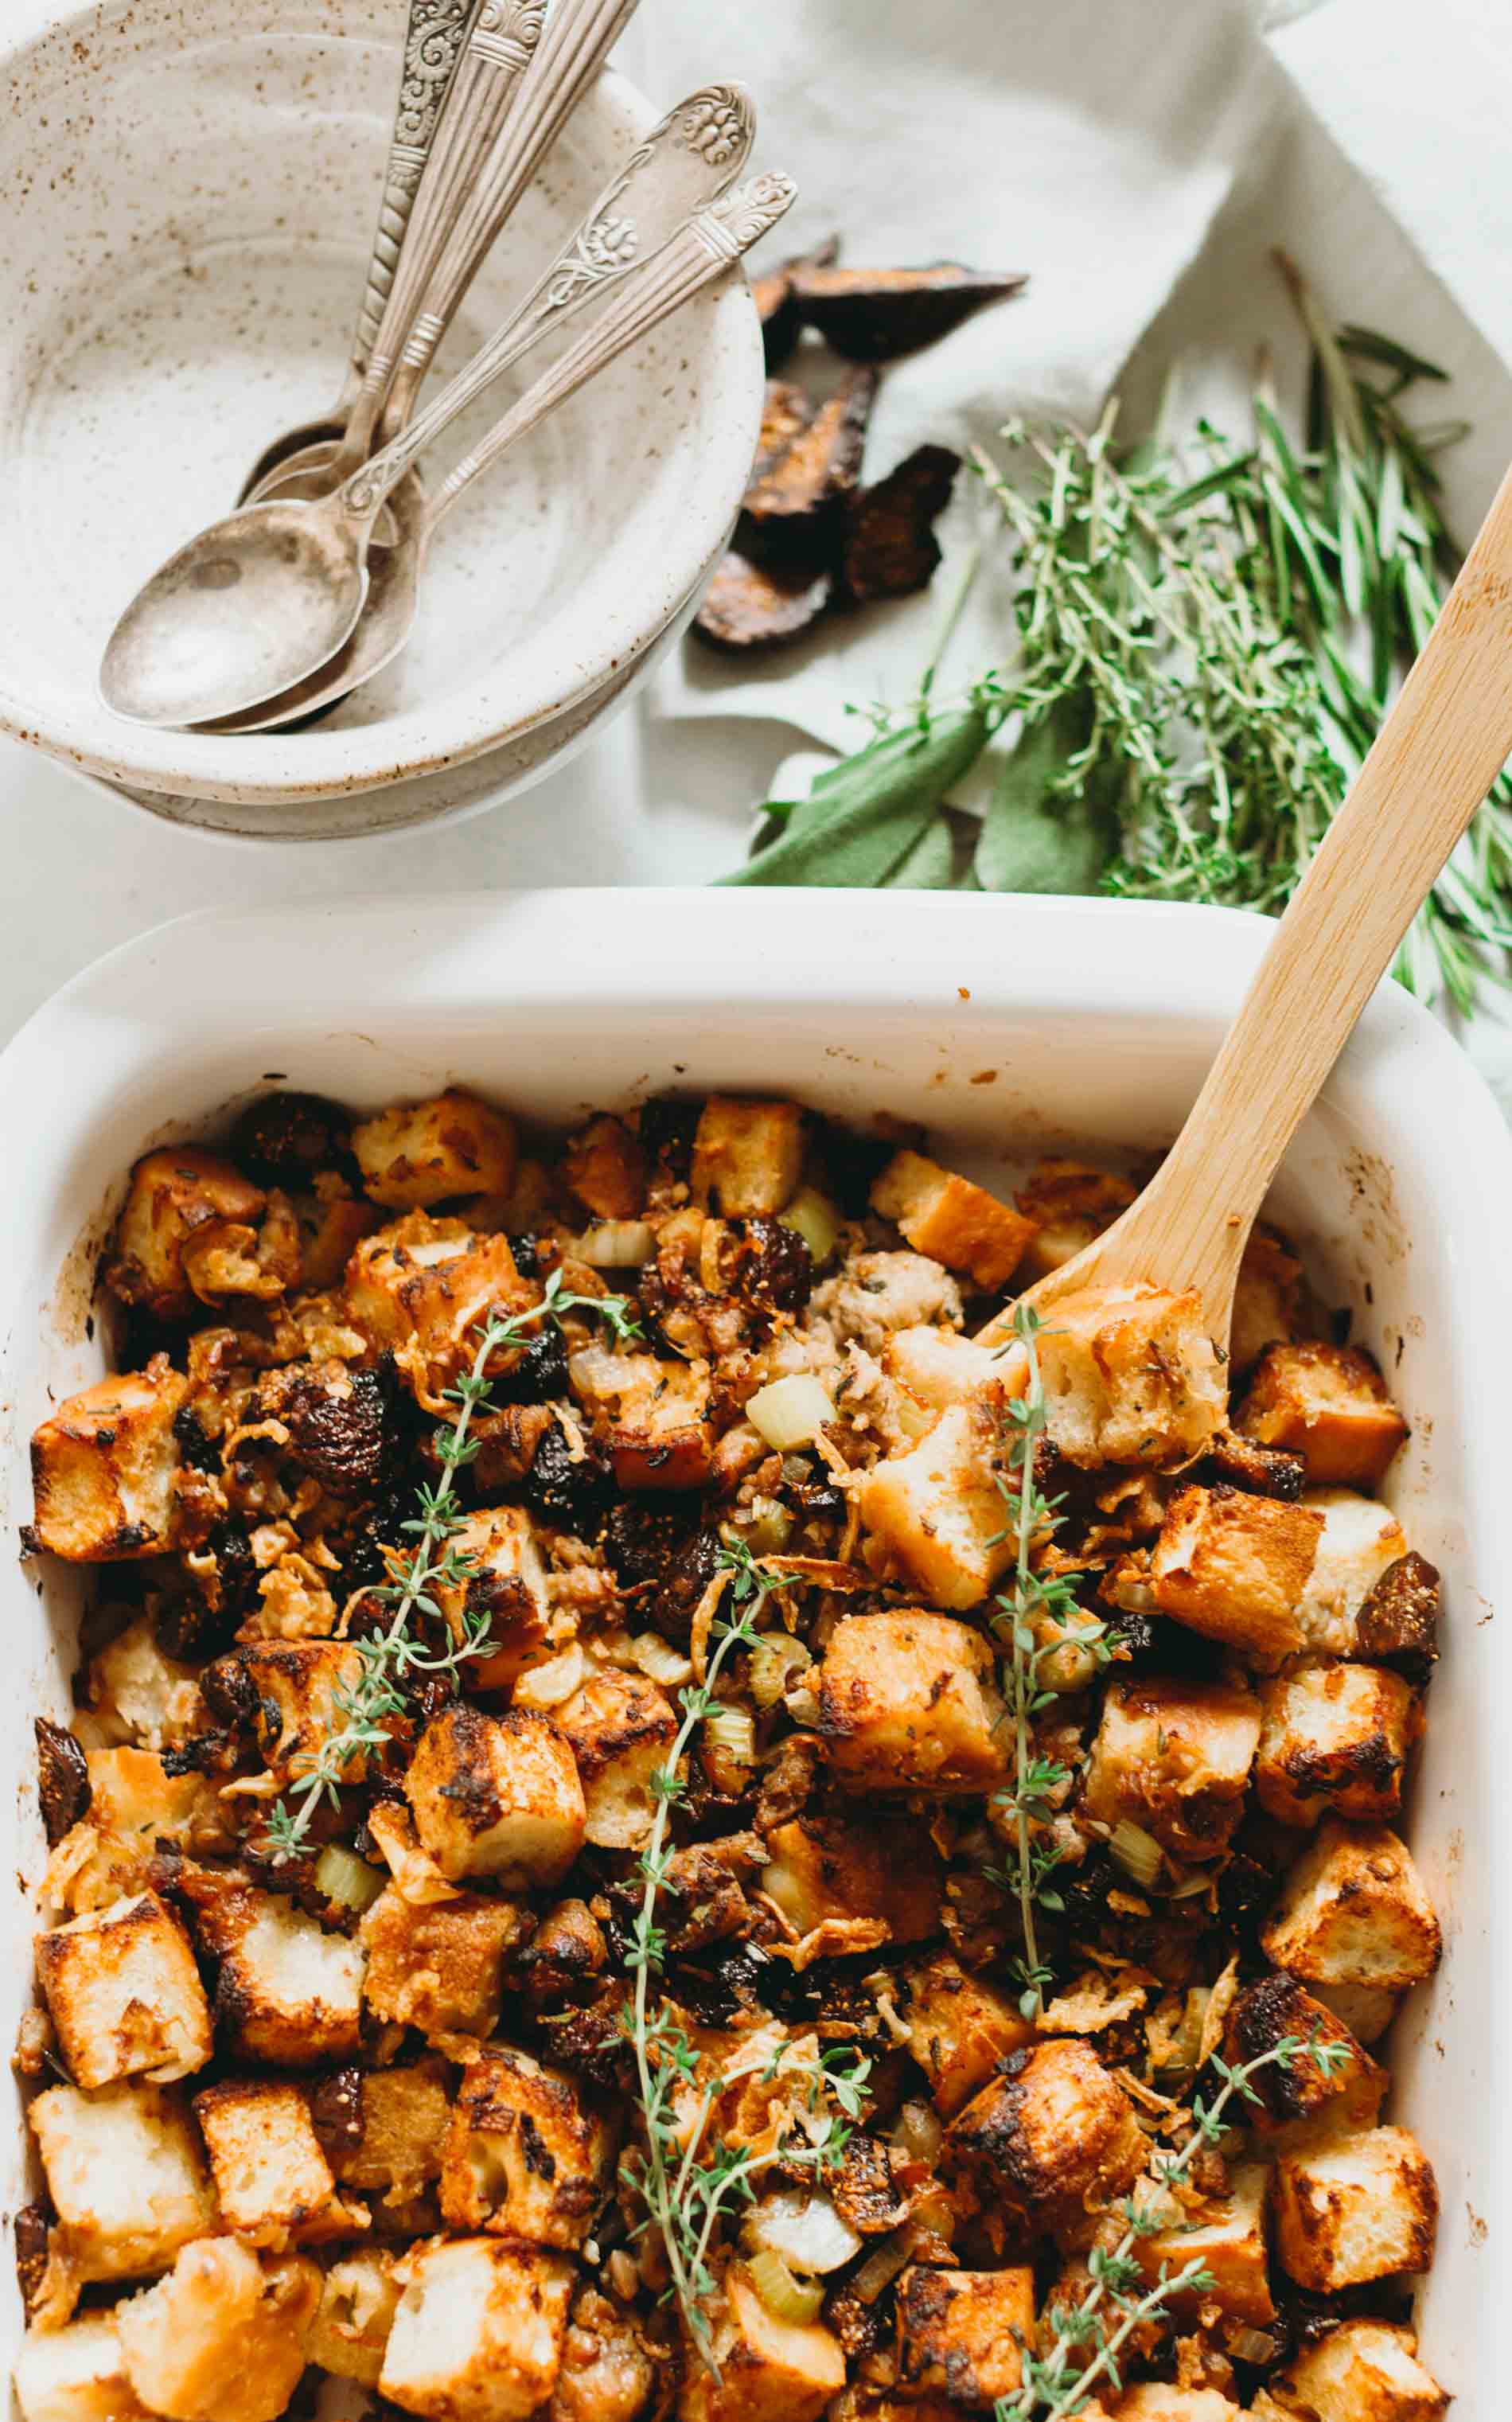 A unique take on the traditional Thanksgiving stuffing! This focaccia stuffing is filled with dried figs and chicken sausage for sweet and savory flavors! #thanksgiving #sidedishes #thanksgivingrecipes #stuffing #stuffingrecipe #focaccia #sausage #fig